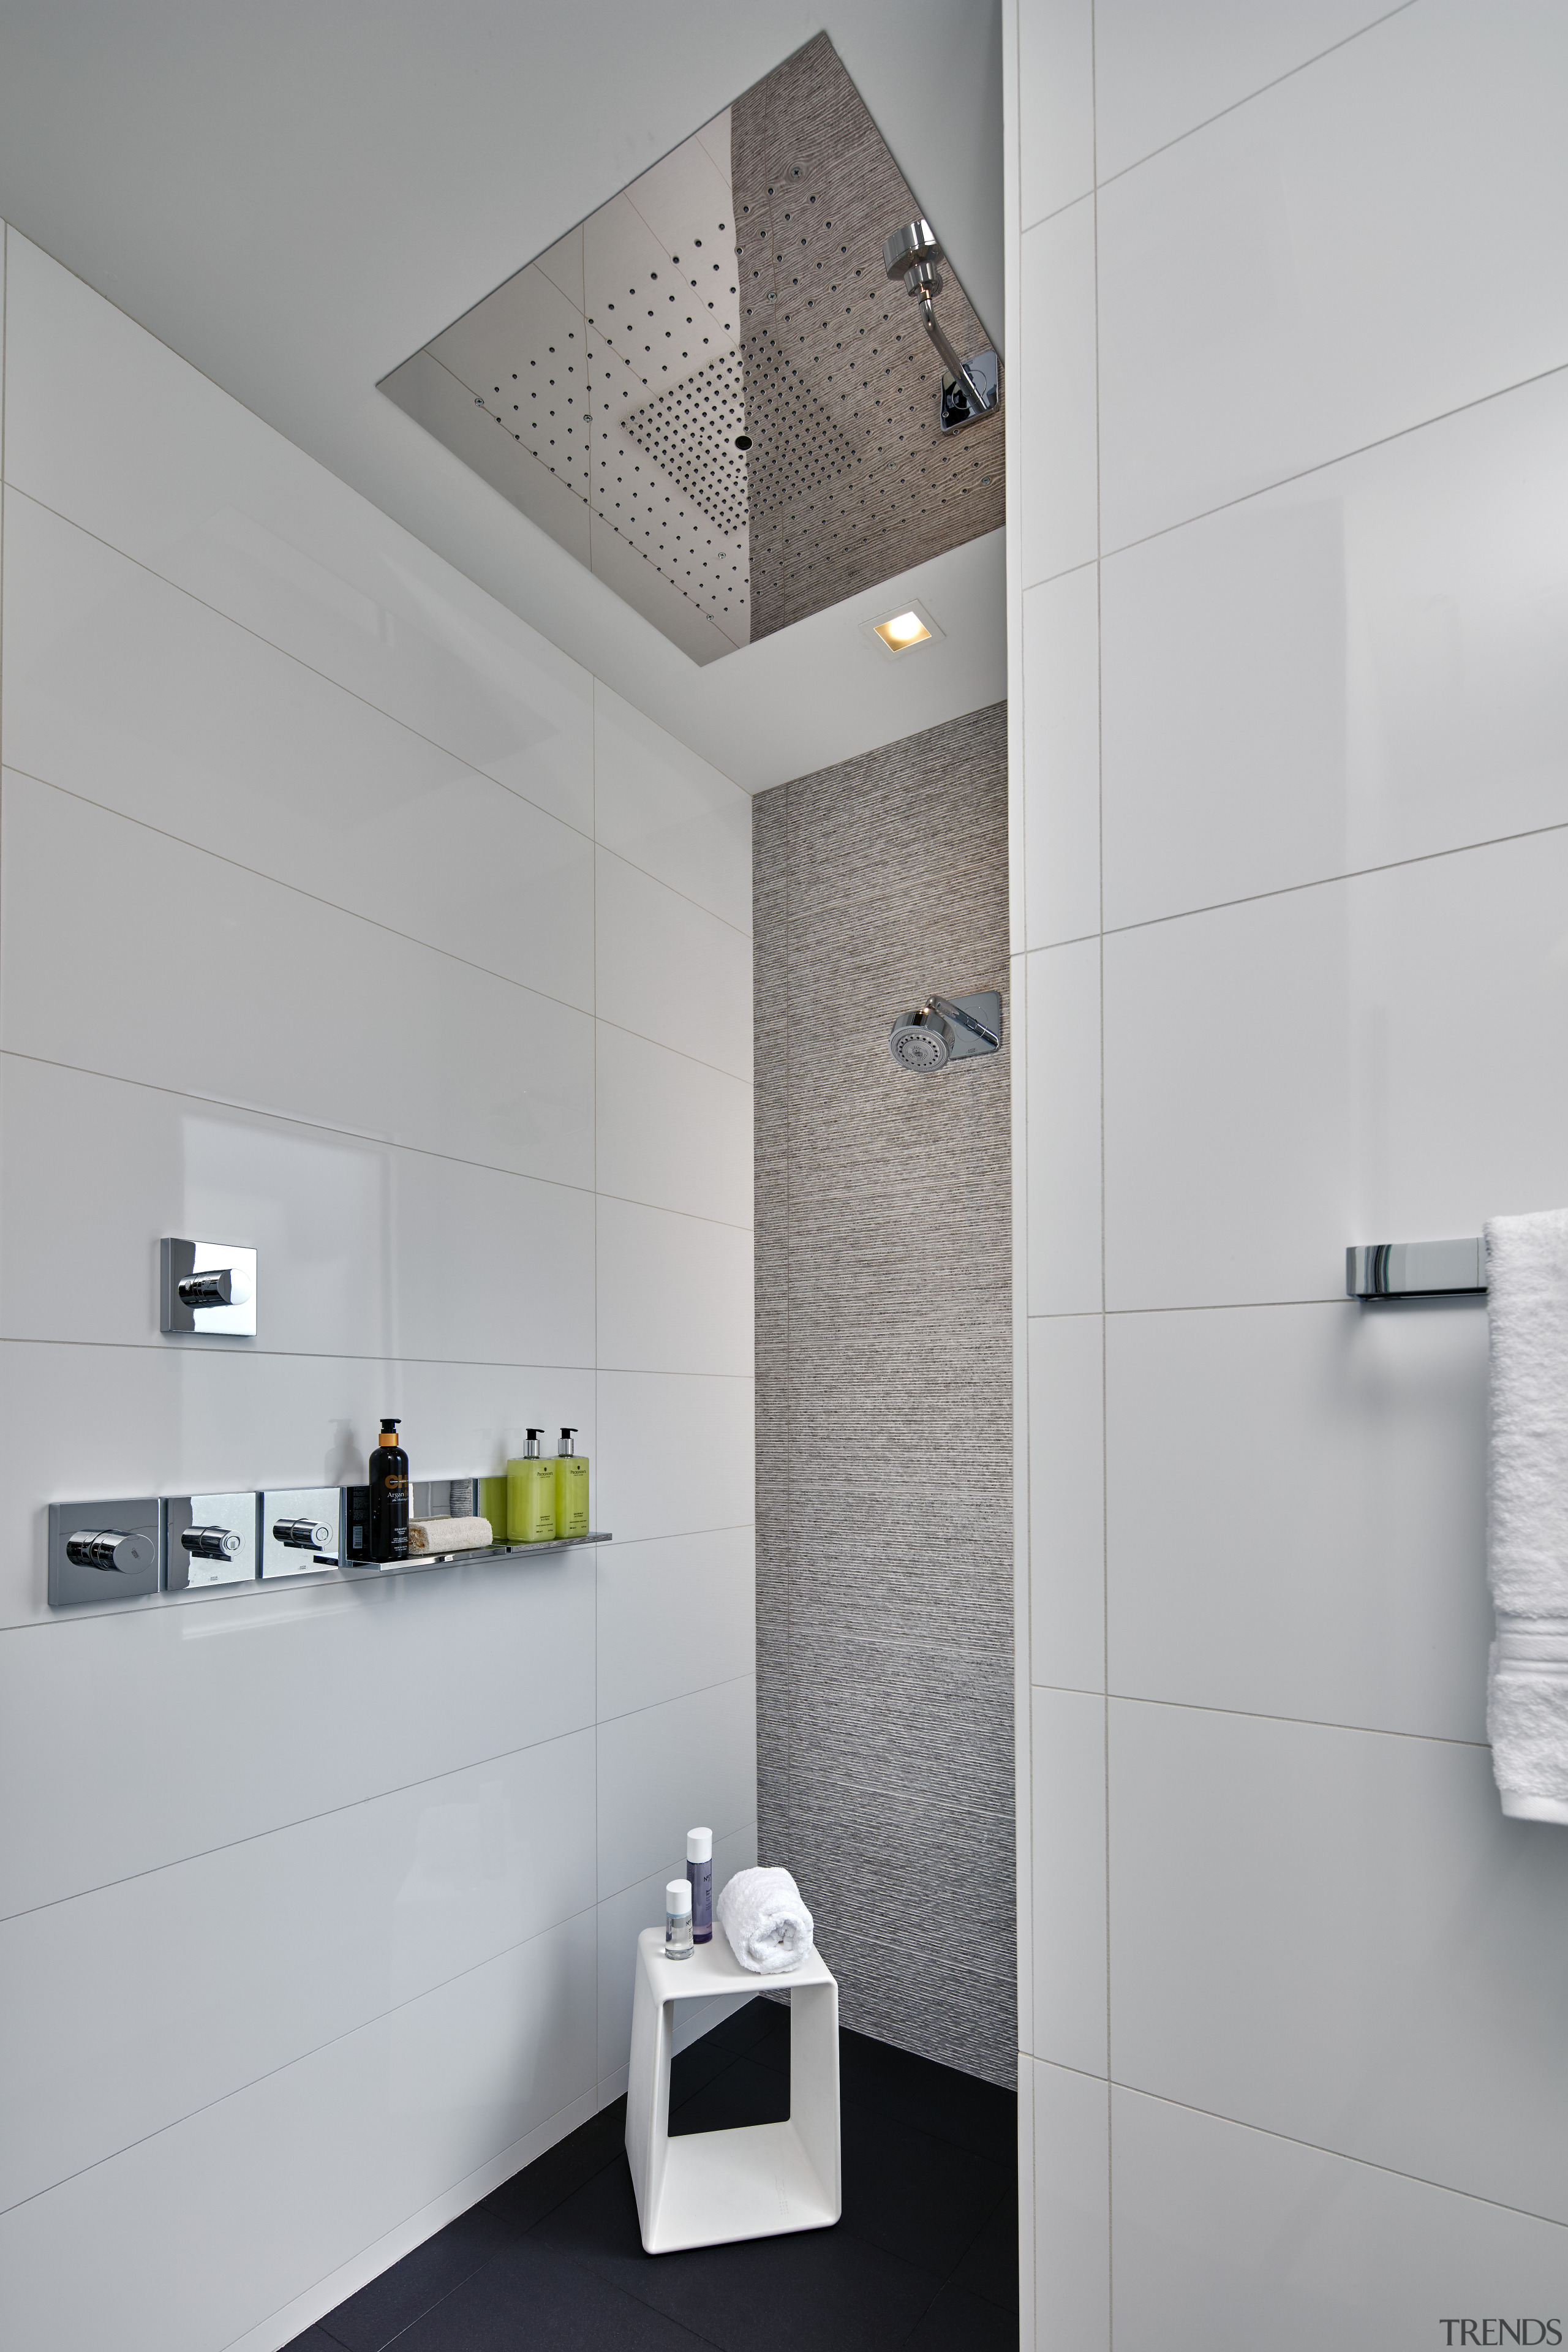 For this master bathroom design, a gently sloping architecture, bathroom, bathroom accessory, bathroom cabinet, daylighting, floor, interior design, plumbing fixture, room, sink, tap, tile, wall, gray